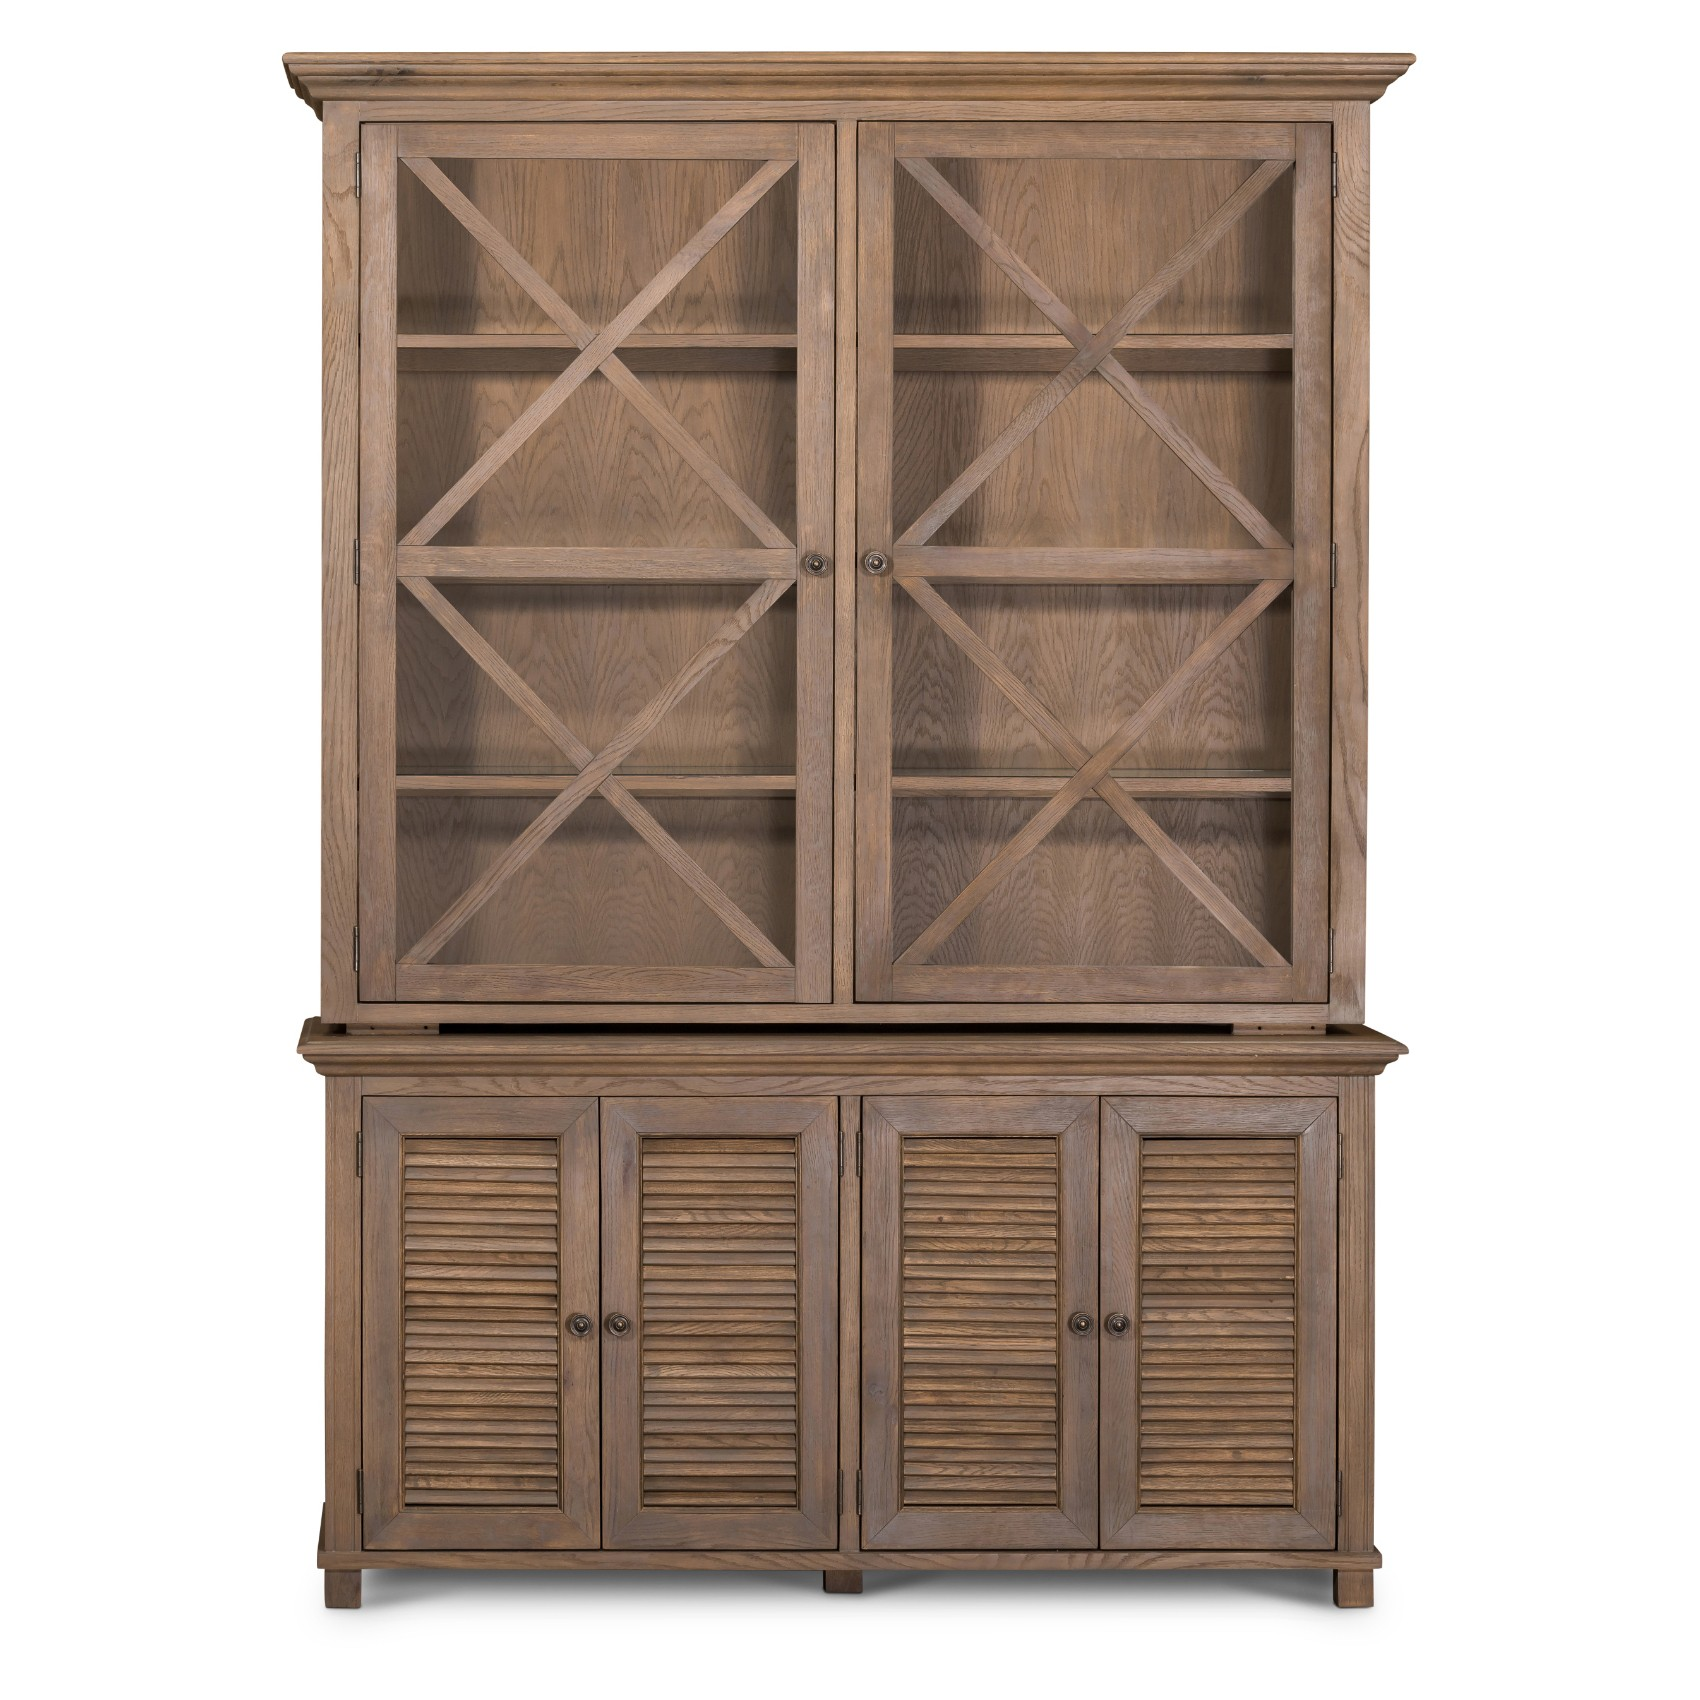 West Beach Wooden Glass Door Hutch Cabinet, Antique Oak